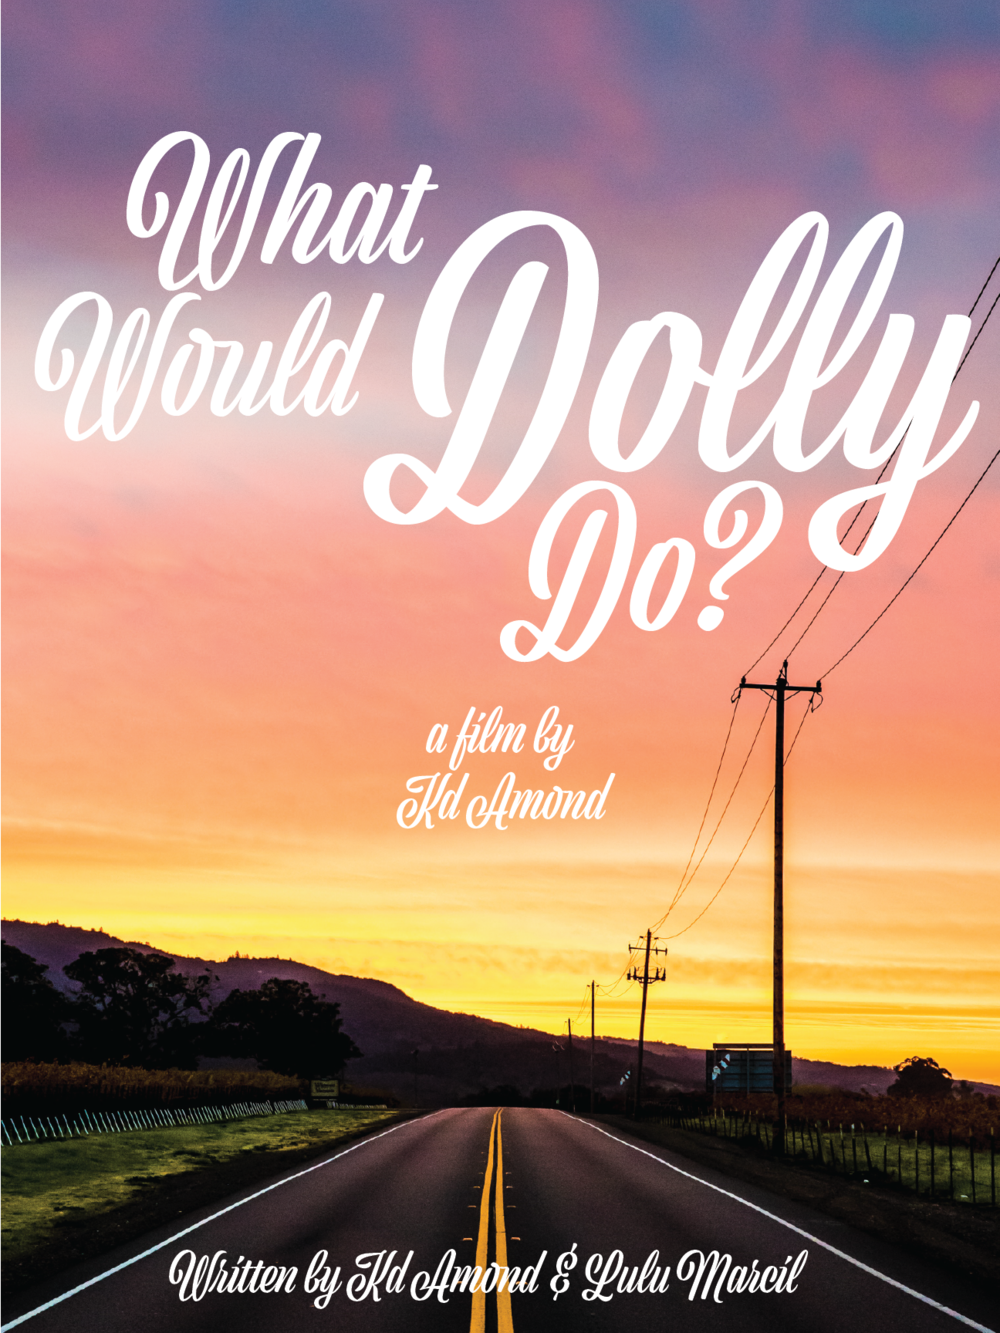 Grand Divisions Production Company Announces Co-Production of Feature Film, What Would Dolly Do? - The Grand Divisions Production Company has partnered with Slide Guy Entertainment and Some Pulp Productions to develop for production What Would Dolly Do? written by Kd Amond & Lulu Marcil and directed by Kd Amond.A love letter to country music, What Would Dolly Do follows The Gypsy Jo's: Laney Hitchcock, Sadie Jo Morgan and Rae Lynn White, a female country music trio from the hills of Appalachia.  Bonded by their talent, ambition, love for one another, and not to mention an unfortunate crime of passion they committed, these girls find themselves in a series of situations where they must rely on their wits and the unfailing wisdom of Dolly Parton's lyrics to solve their problems. While their adventures on the road make for plenty of songwriting material, the law is never far behind as they chase their dream of becoming country music's next success story.